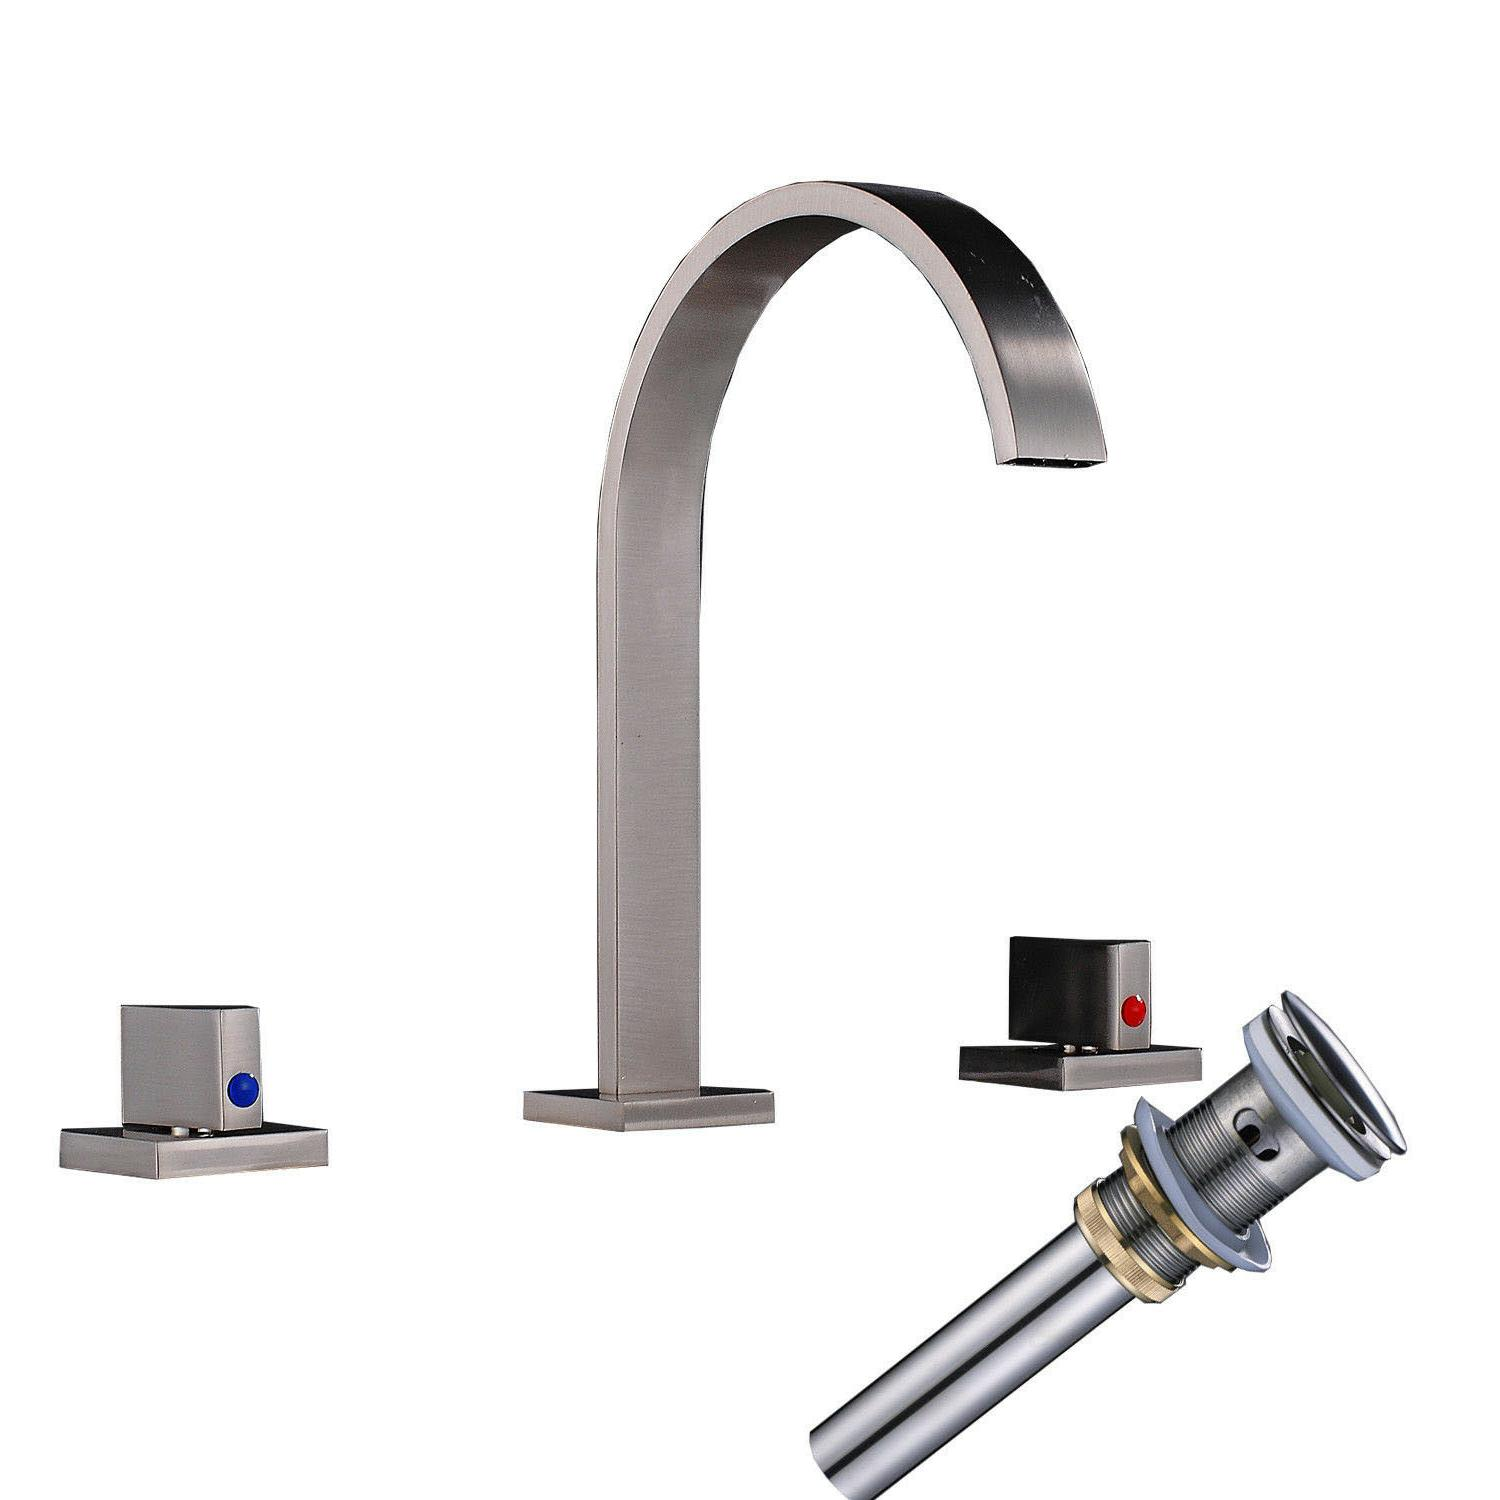 Bathroom Basin Faucet Brushed Nickel Waterfall Spout Sink Wi